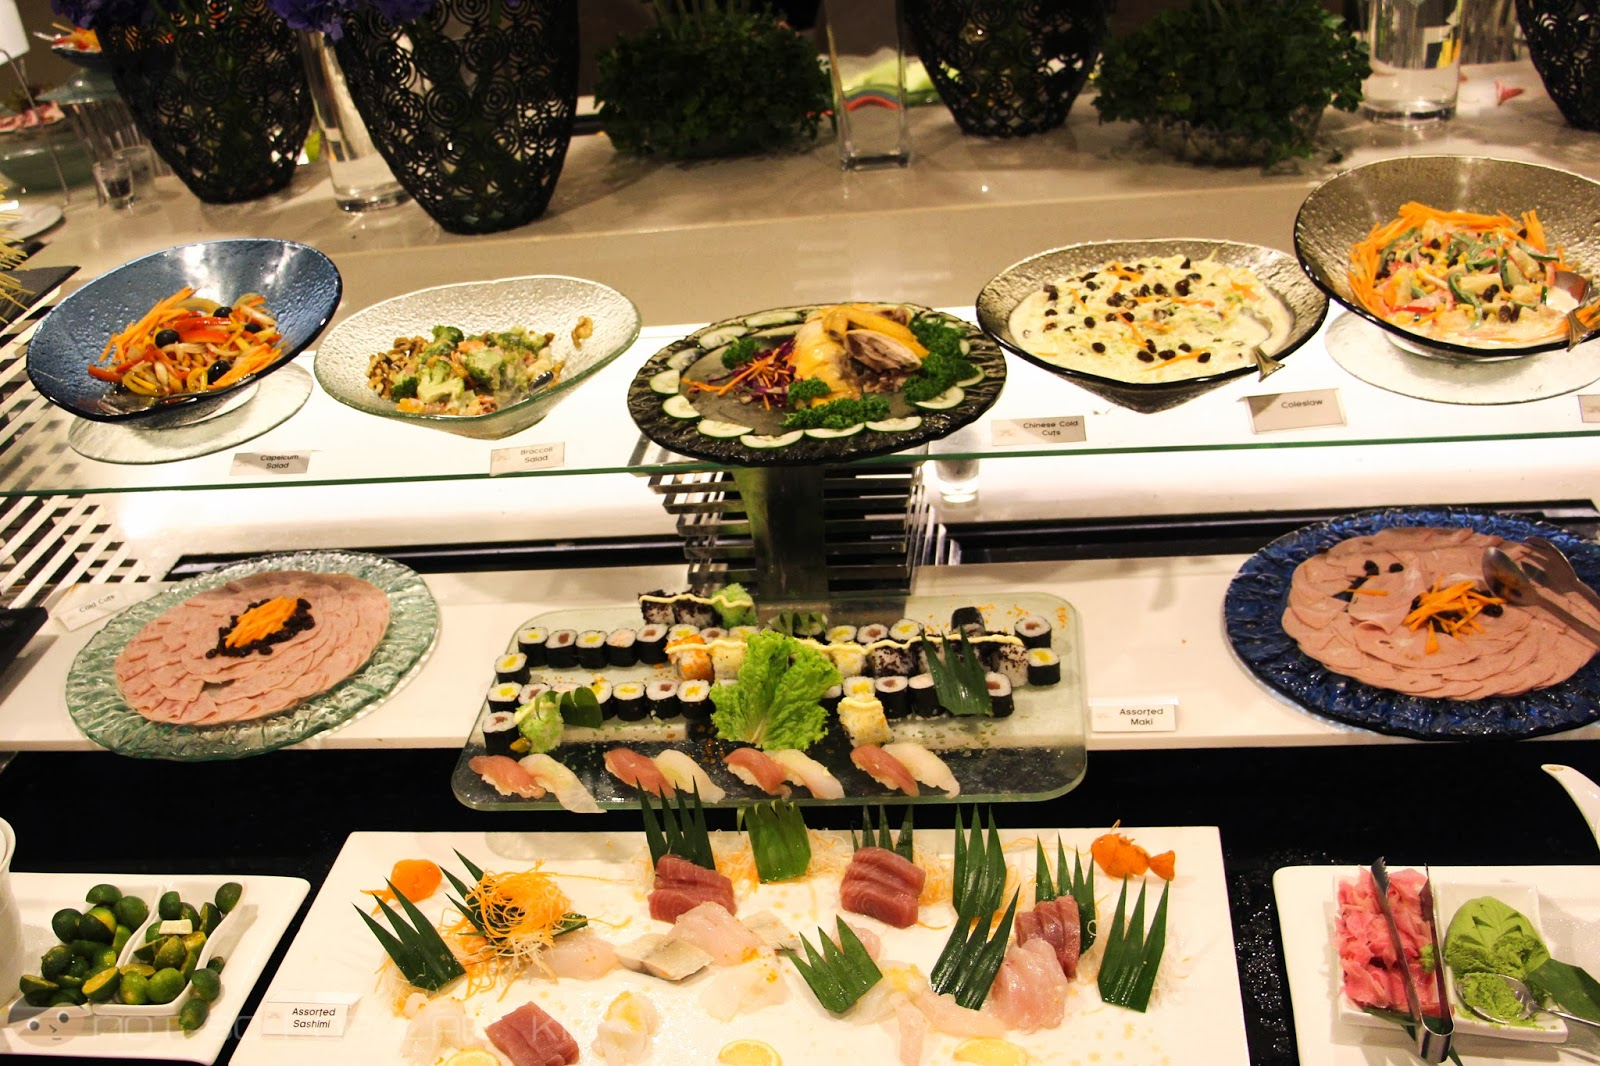 The Sushi Bar of Midas Cafe - Sushi, sashimi and more!